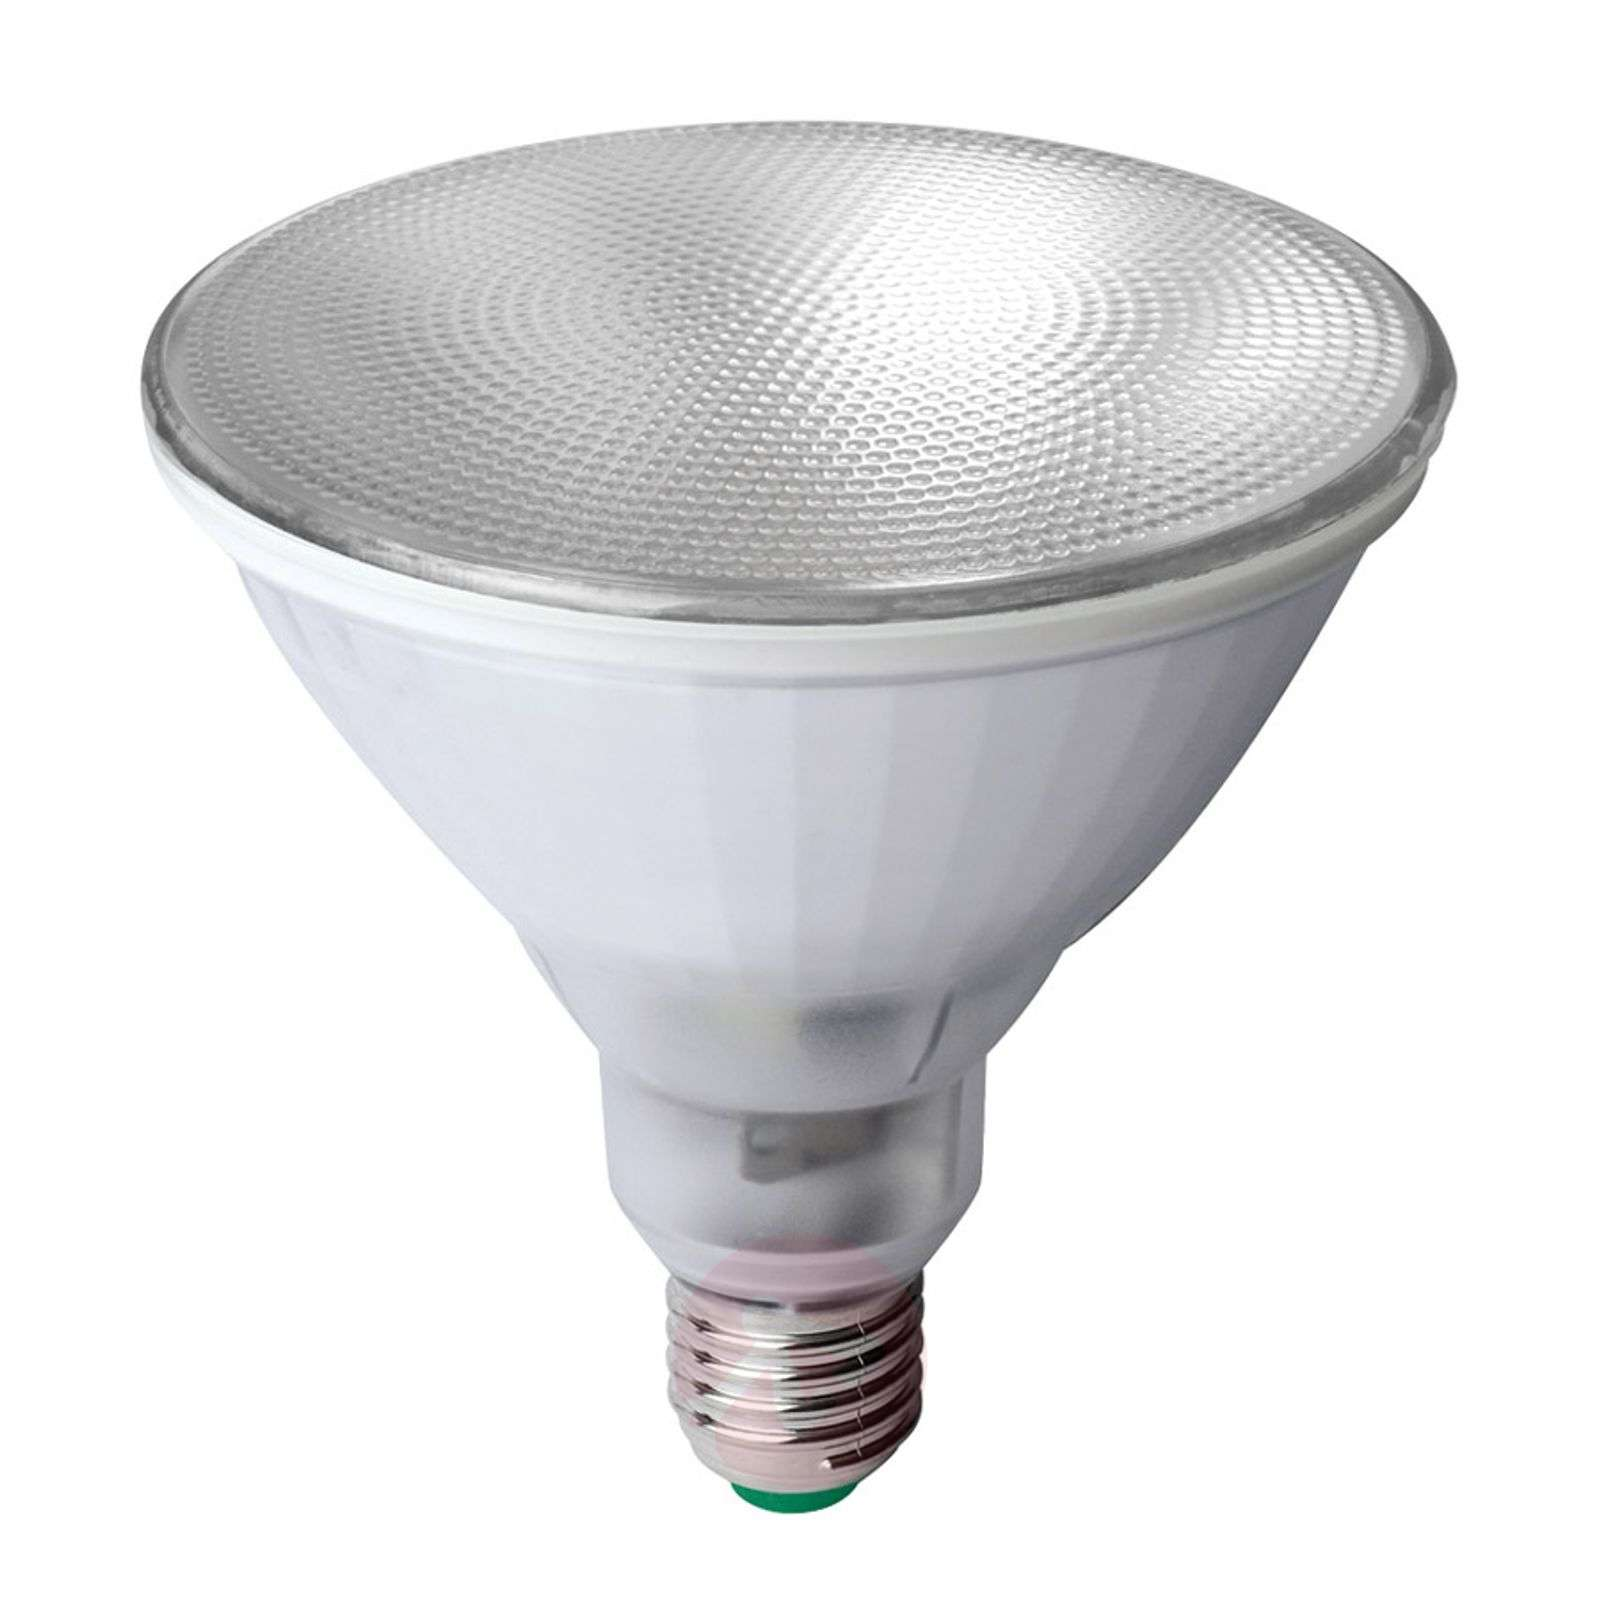 E27 8.5 W LED plant lamp, PAR38 35degree-6530217-01